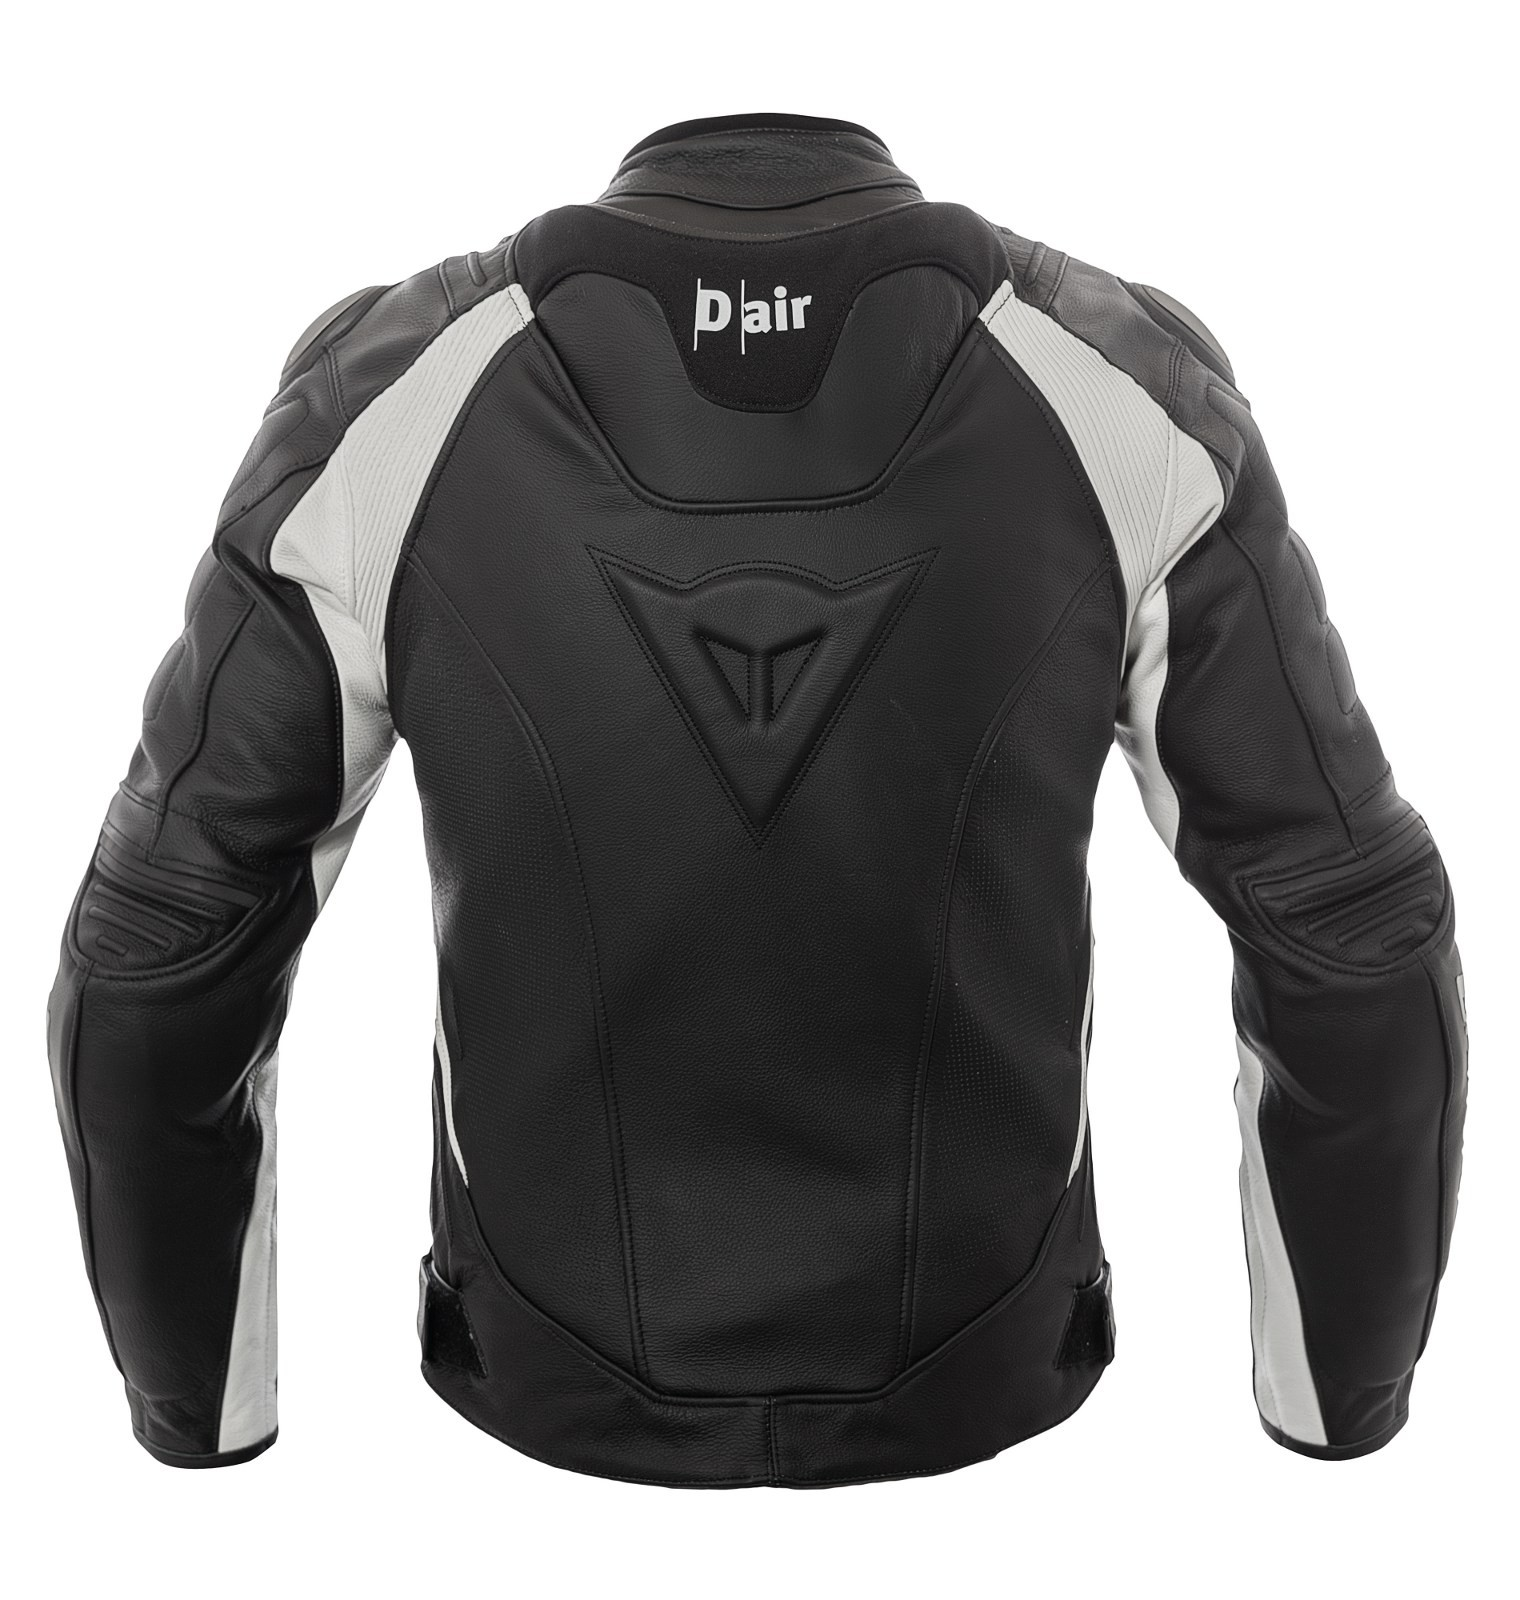 blouson dainese d air misano 1000 blouson moto dainese japauto accessoires. Black Bedroom Furniture Sets. Home Design Ideas